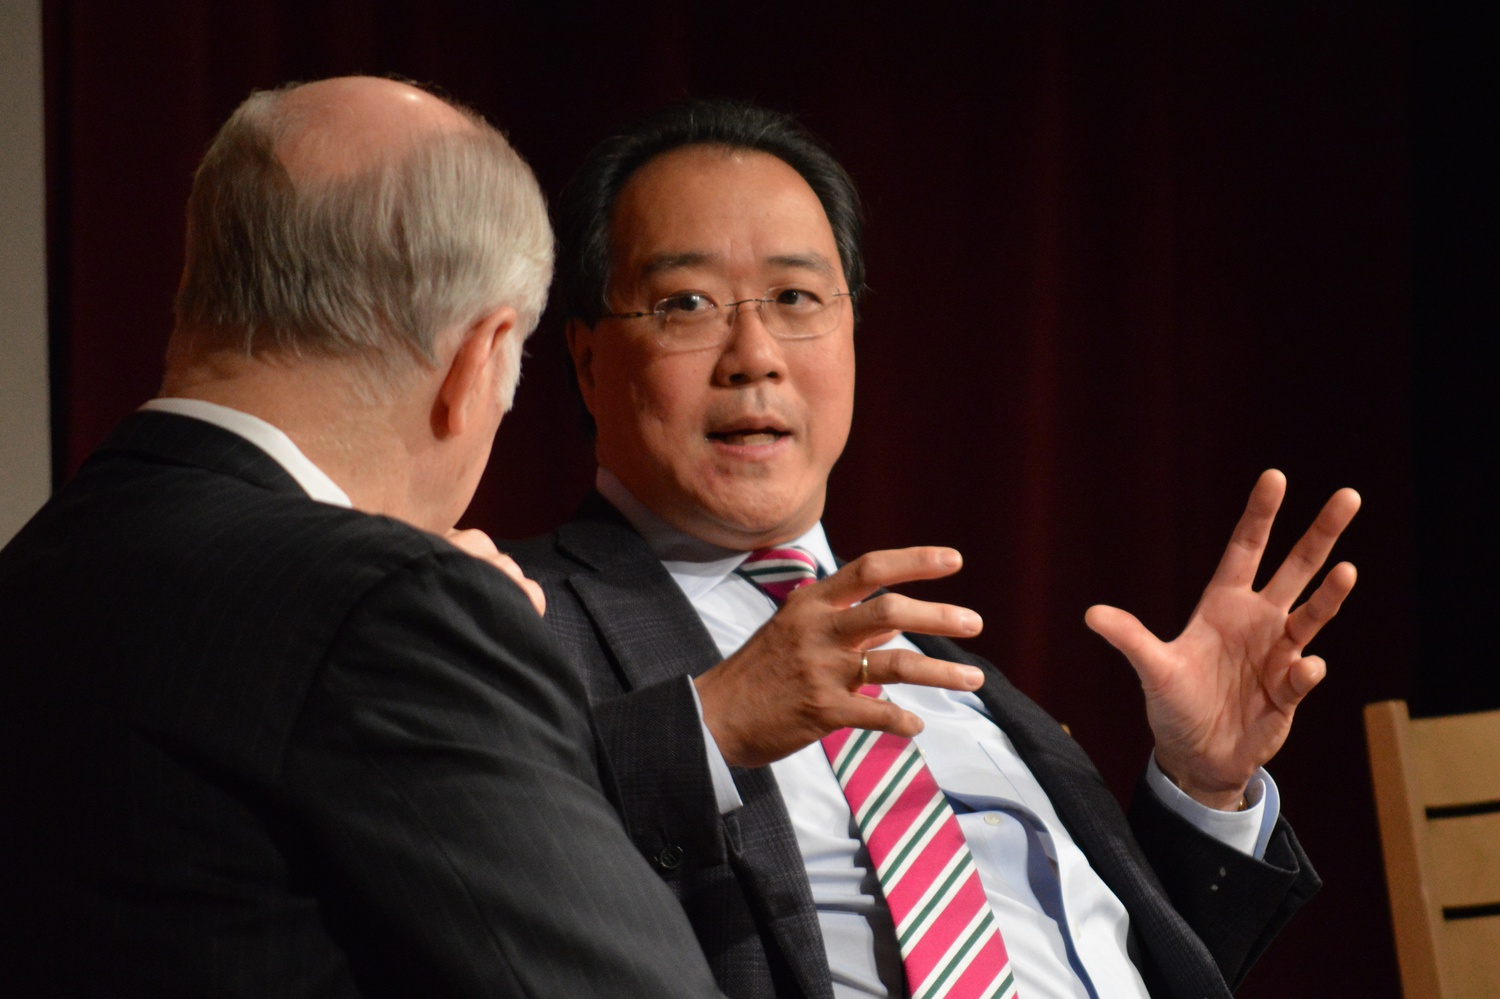 Cellist Yo-Yo Ma '76 — seen here at an event in 2014 — joined six Harvard students to discuss the importance of art in bridging various personal and global gaps in a virtual event hosted by Harvard's Office of the Arts on Monday.